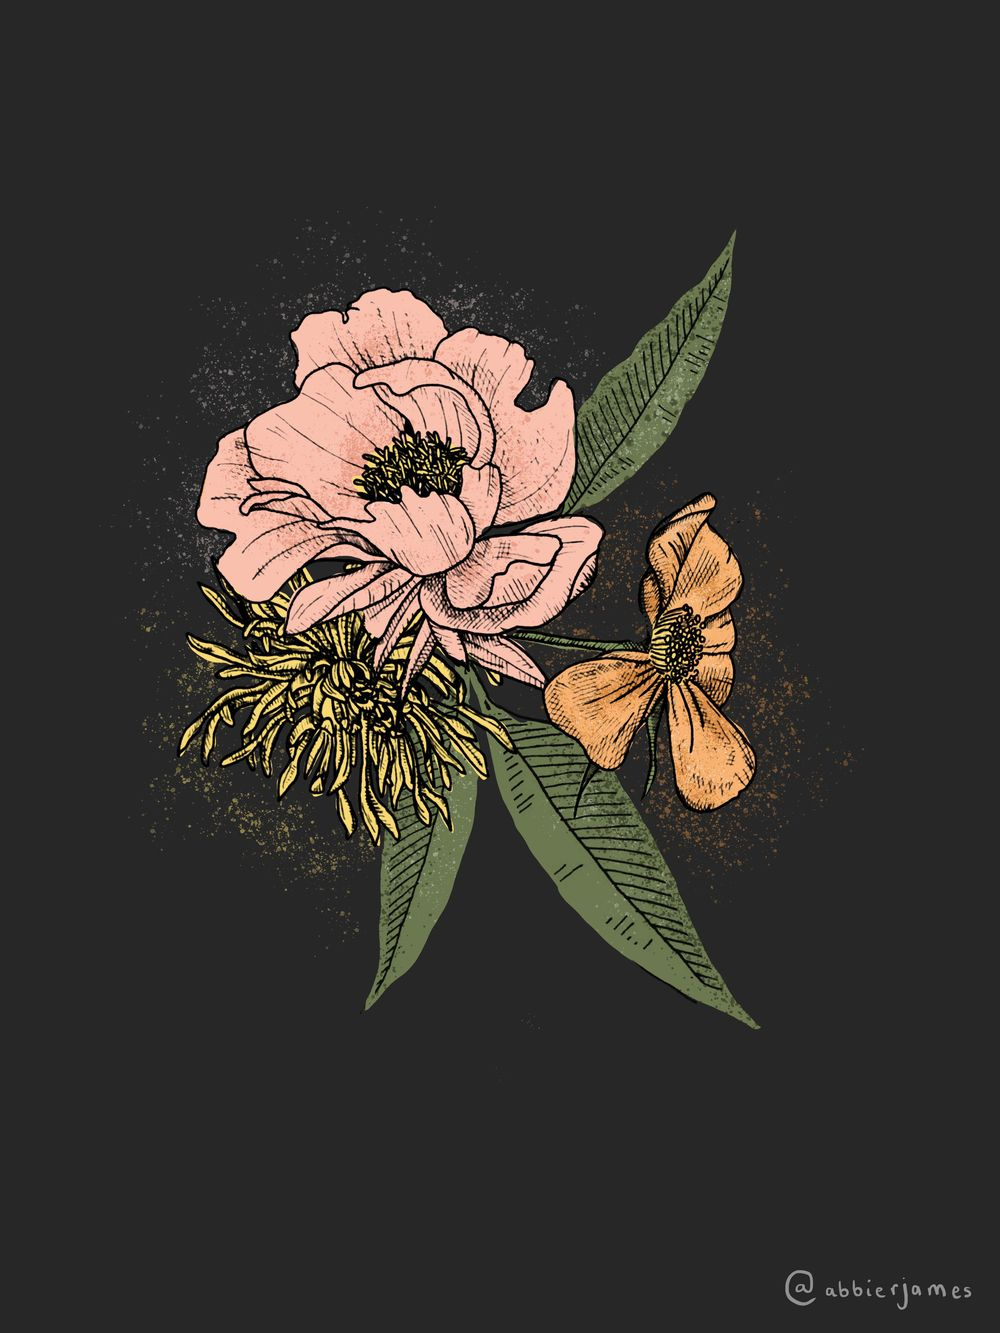 Floral Illustration in Photoshop - image 2 - student project